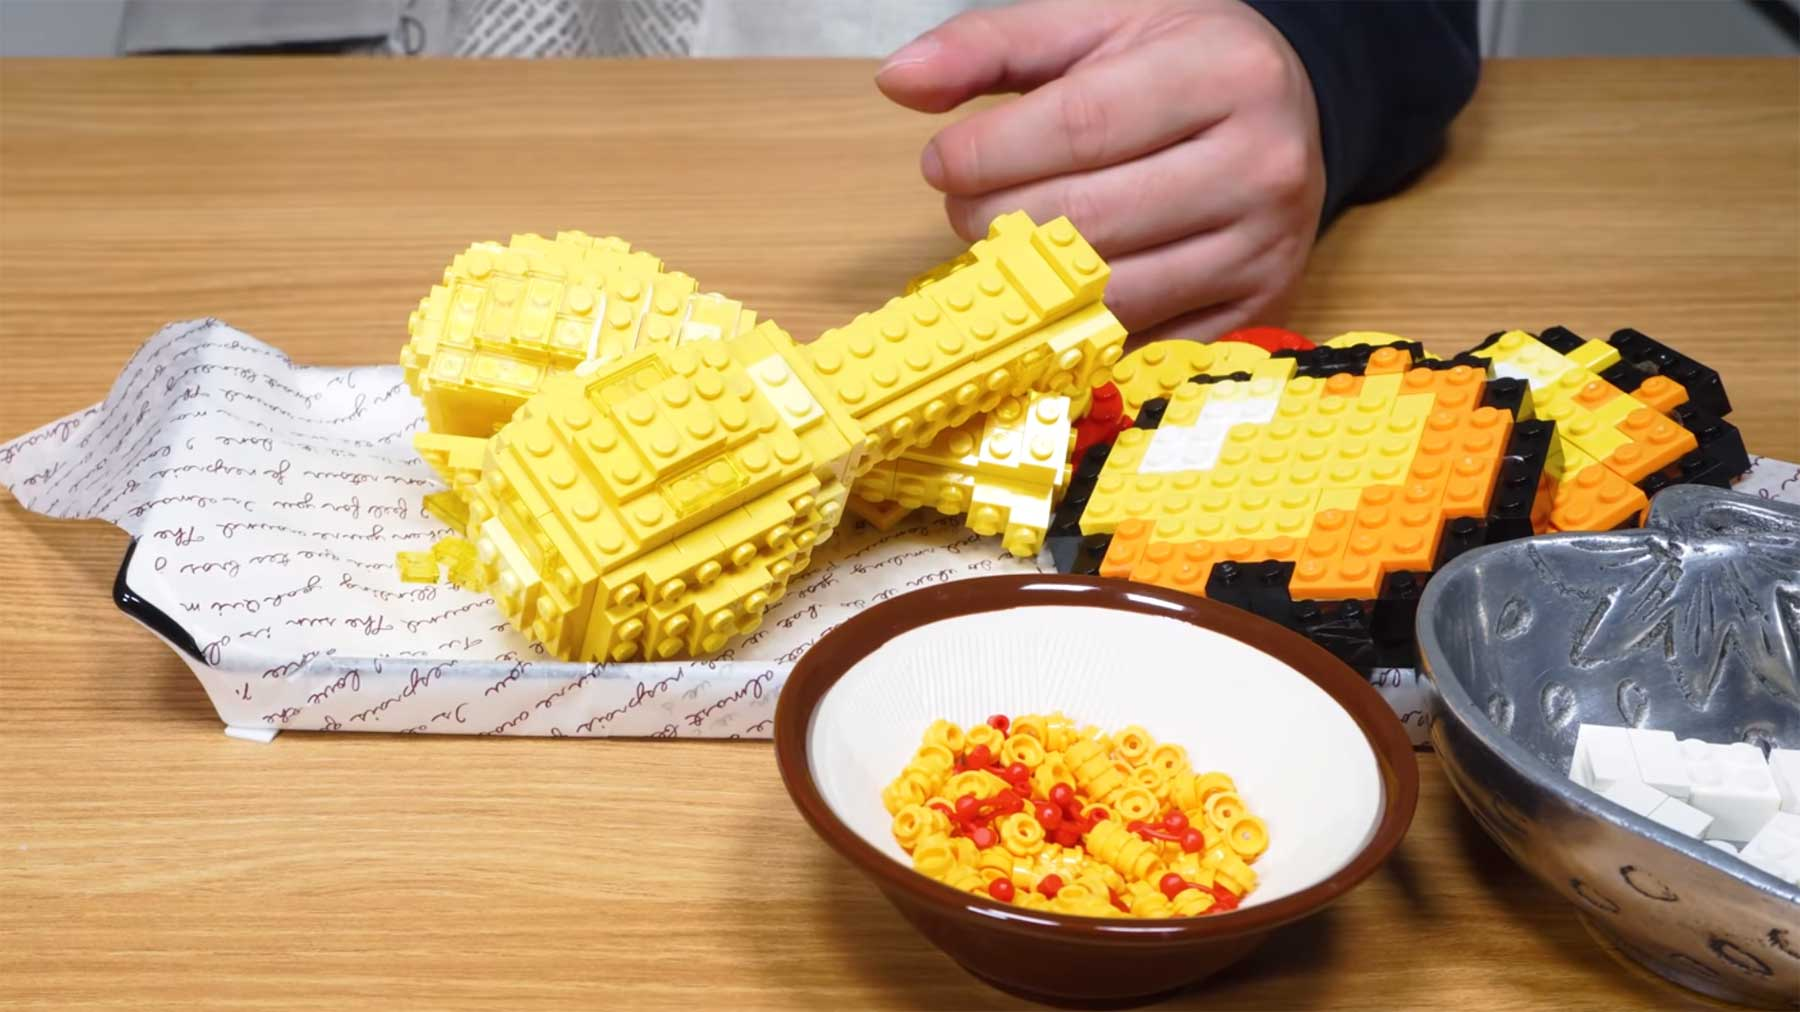 Fried LEGO Chicken lego-fried-chicken-stopmotion-video